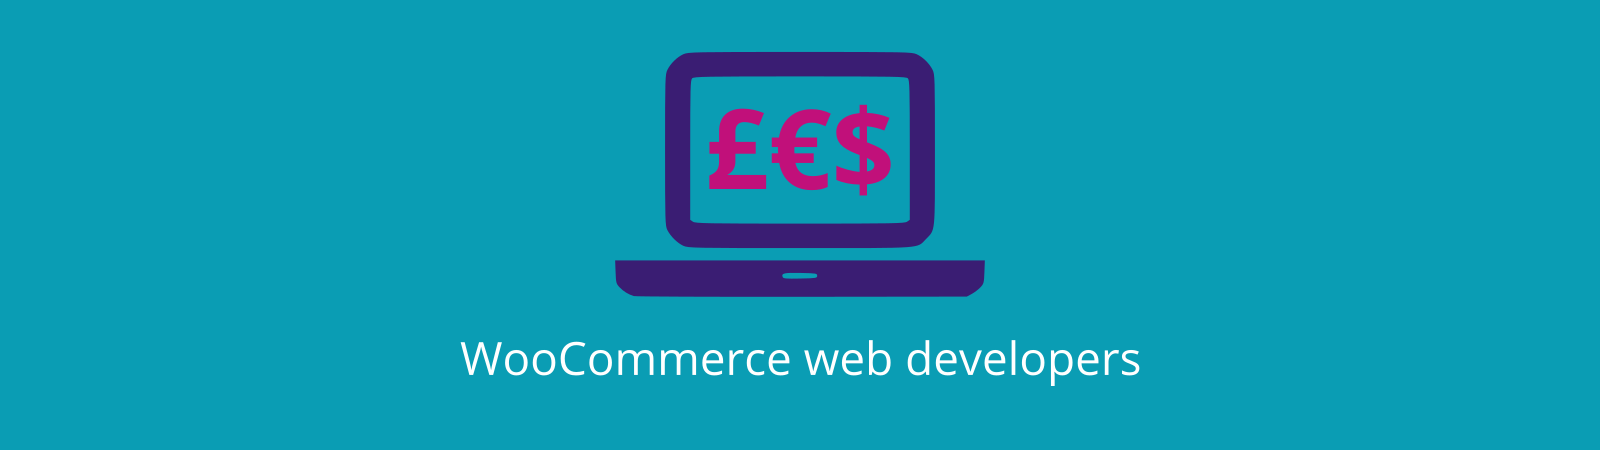 WooCommerce web developers based in the UK